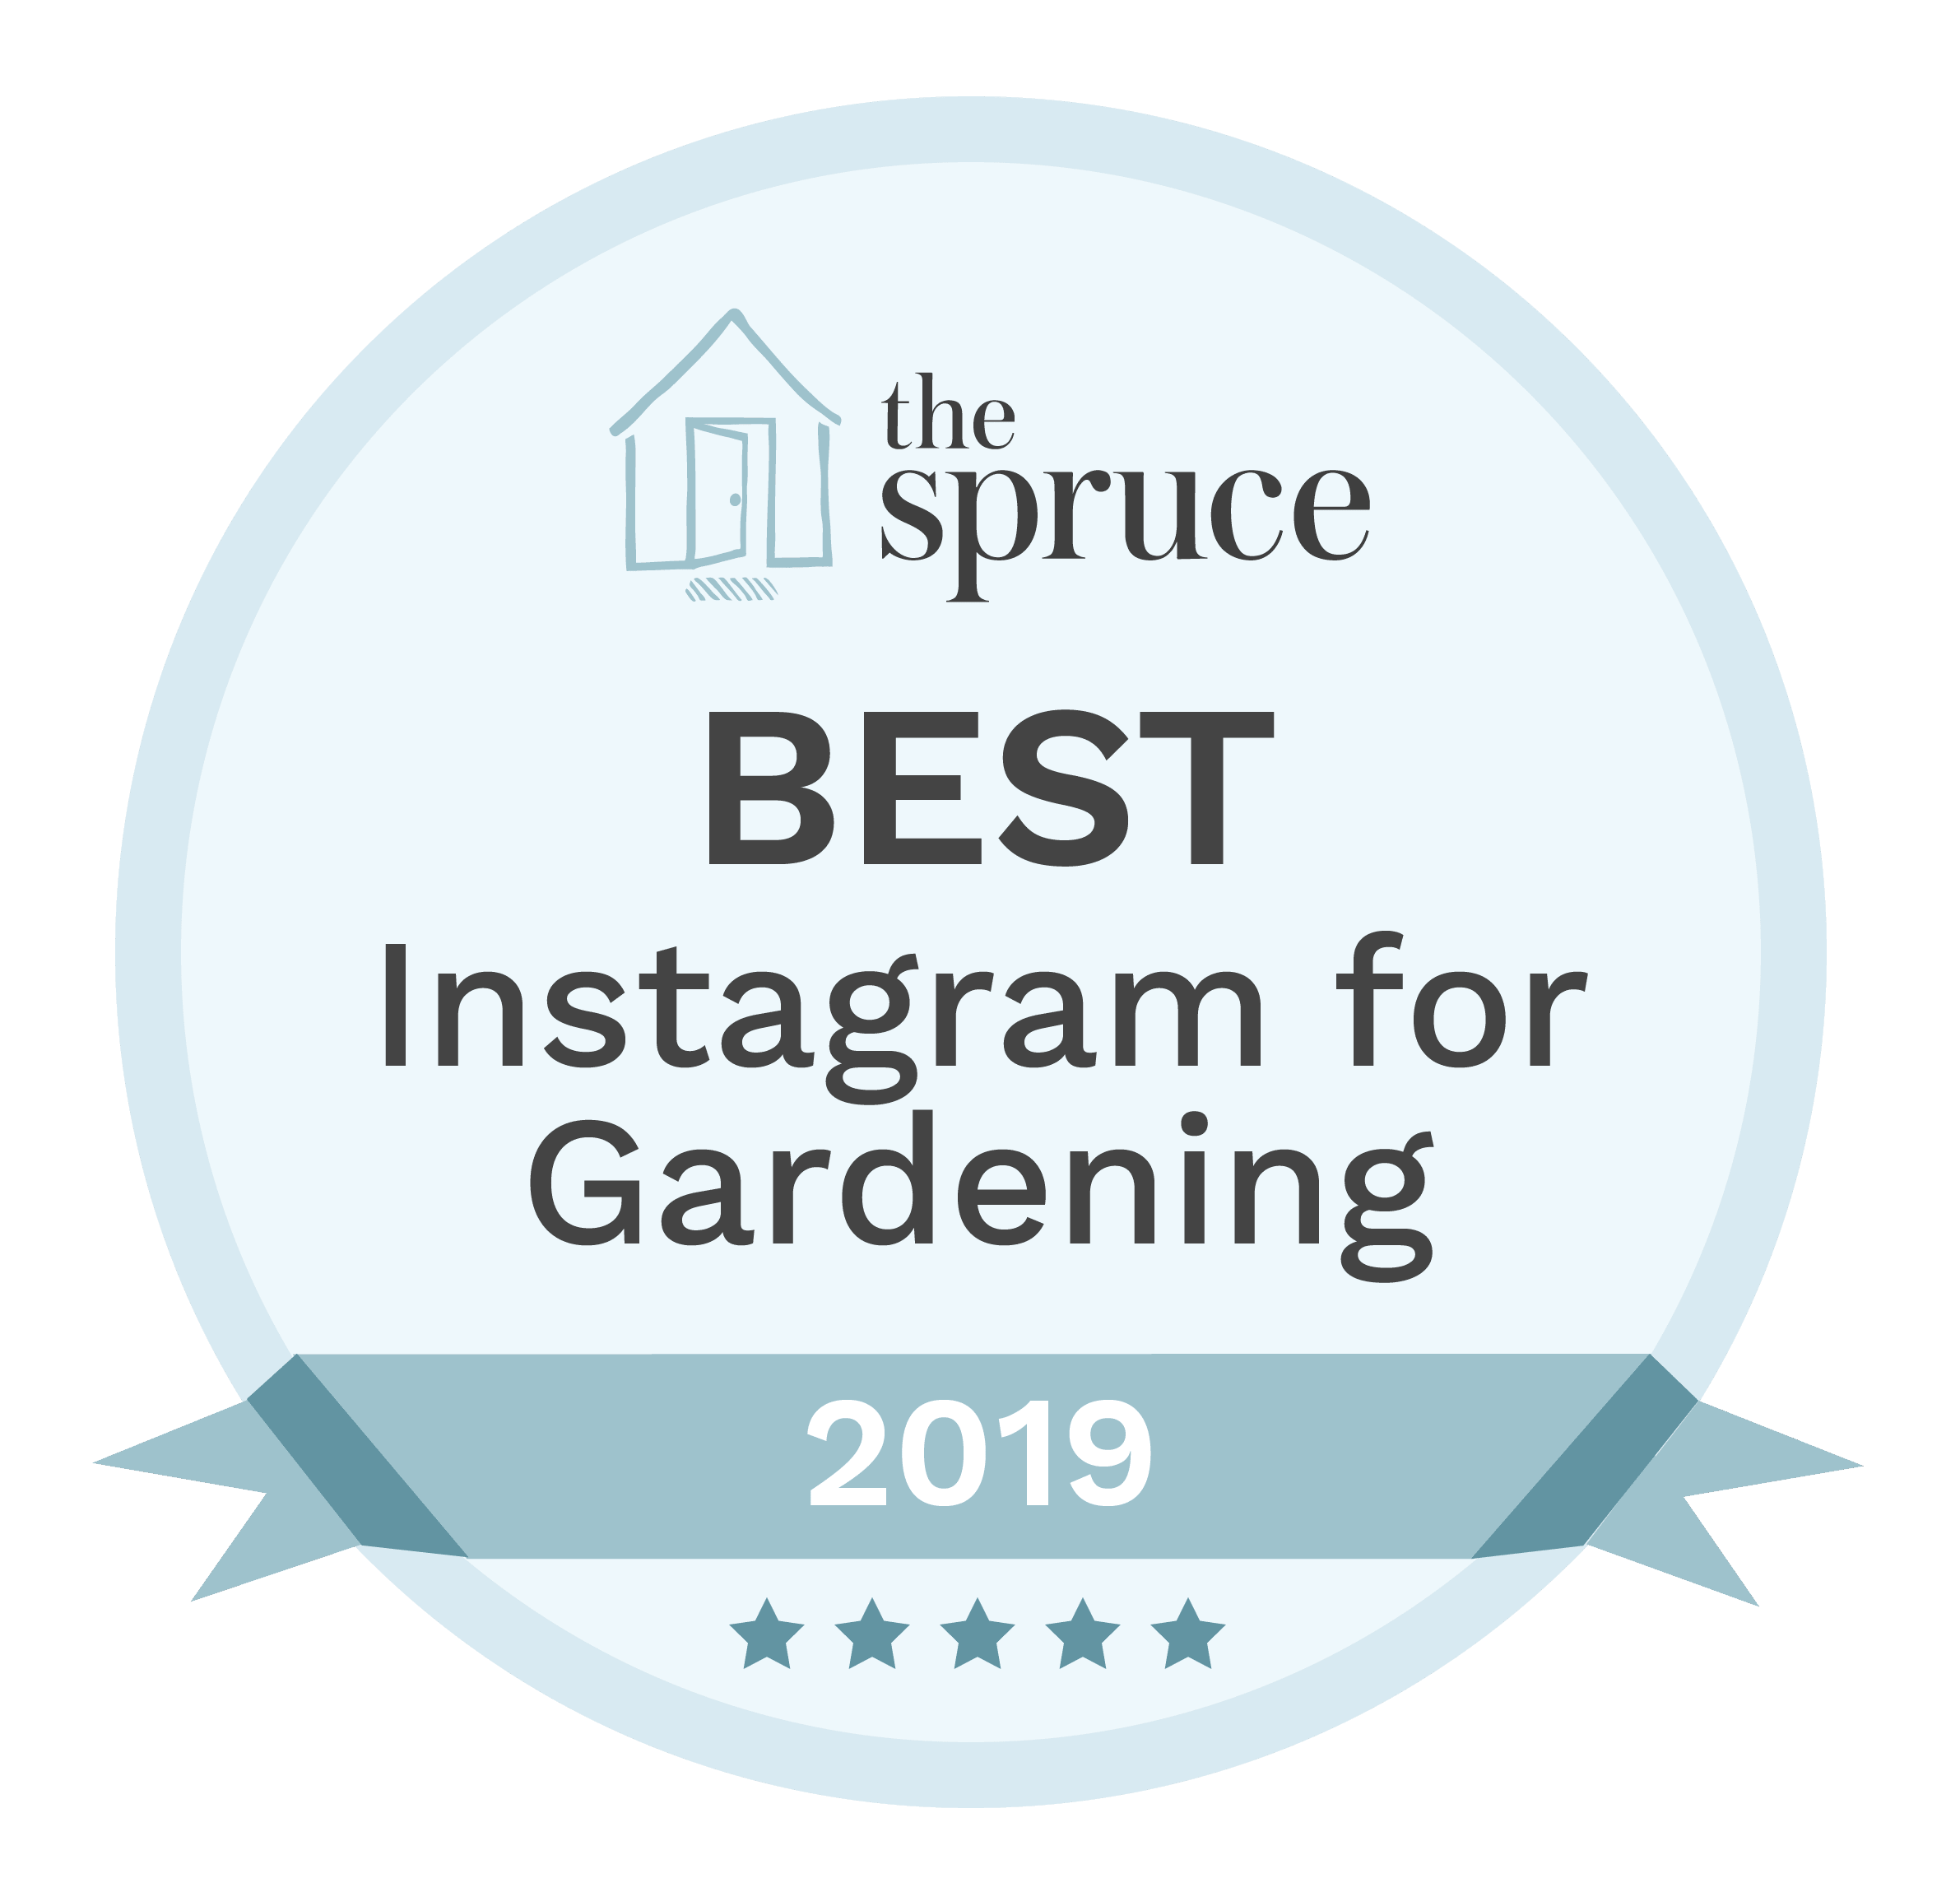 Best Instagram for Gardening